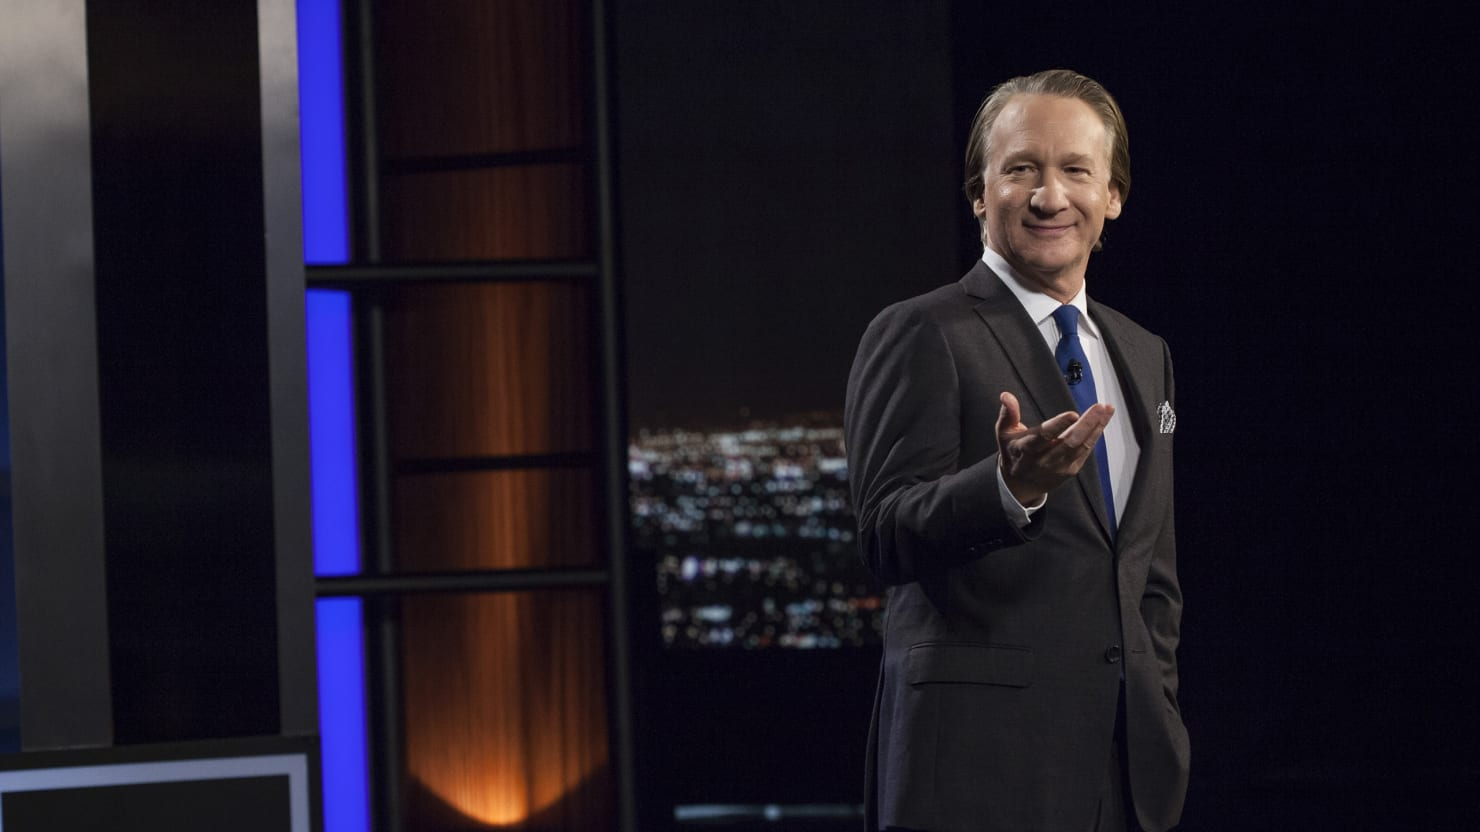 Bill Maher and Richard Dawkins Slam Muslims: 'To Hell with Their Culture'